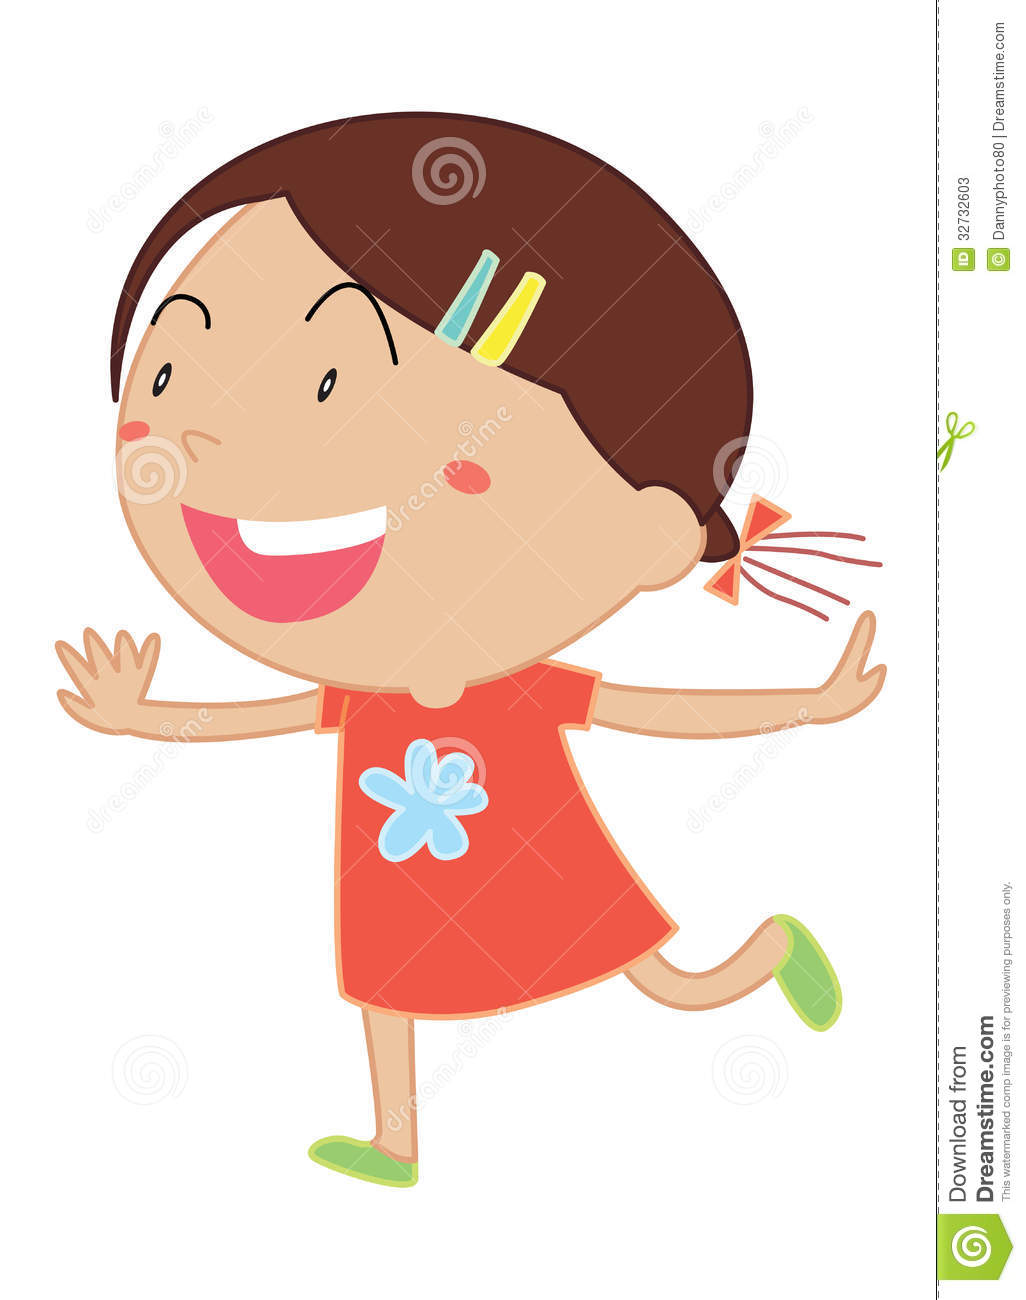 Simple child cartoon stock. Baby girl clipart cimple